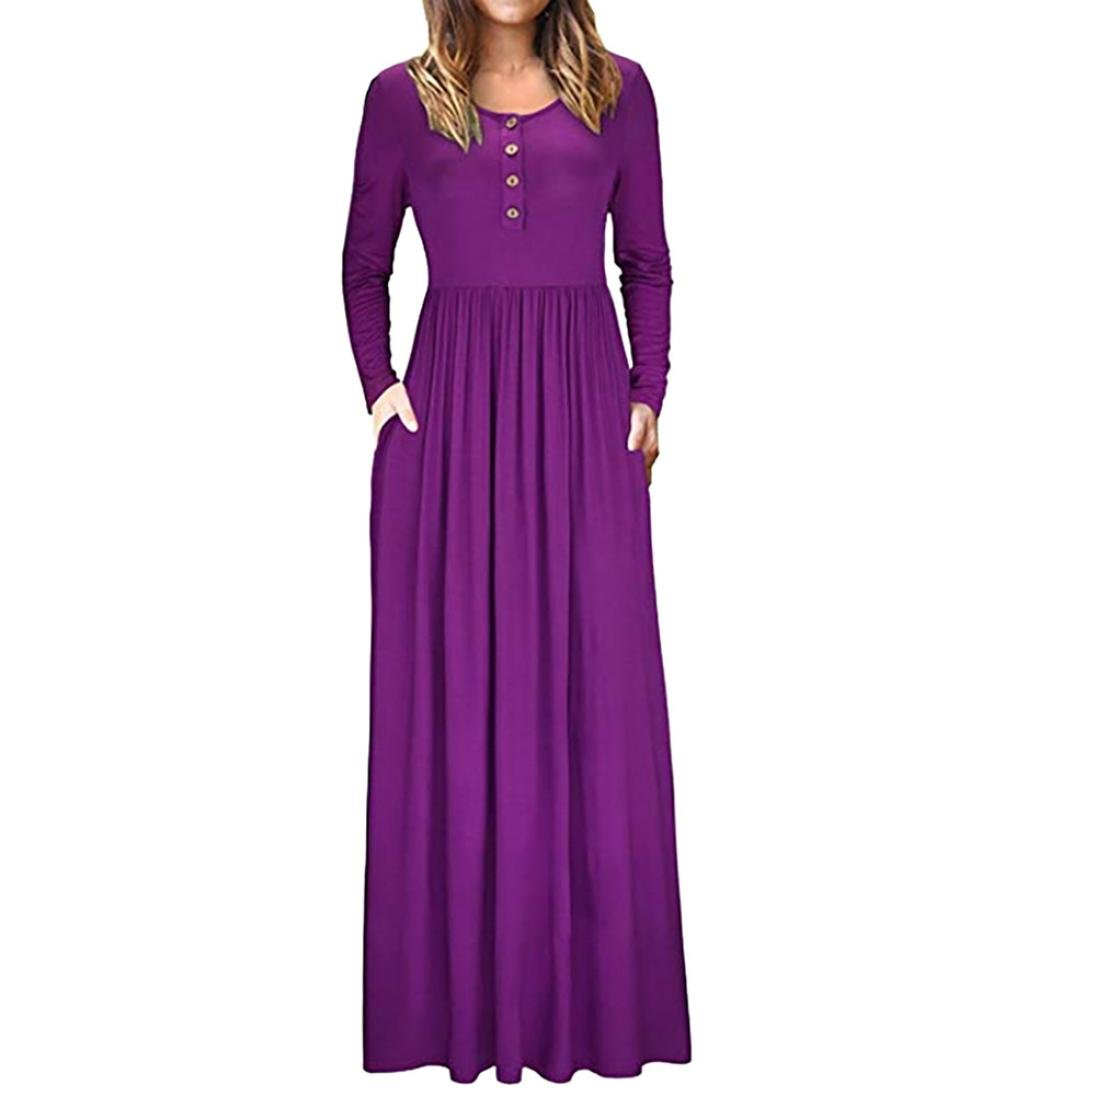 Women Dress Long Sleeve Casual Button up Loose Long Maxi Dresses with Pockets (Purple, S)